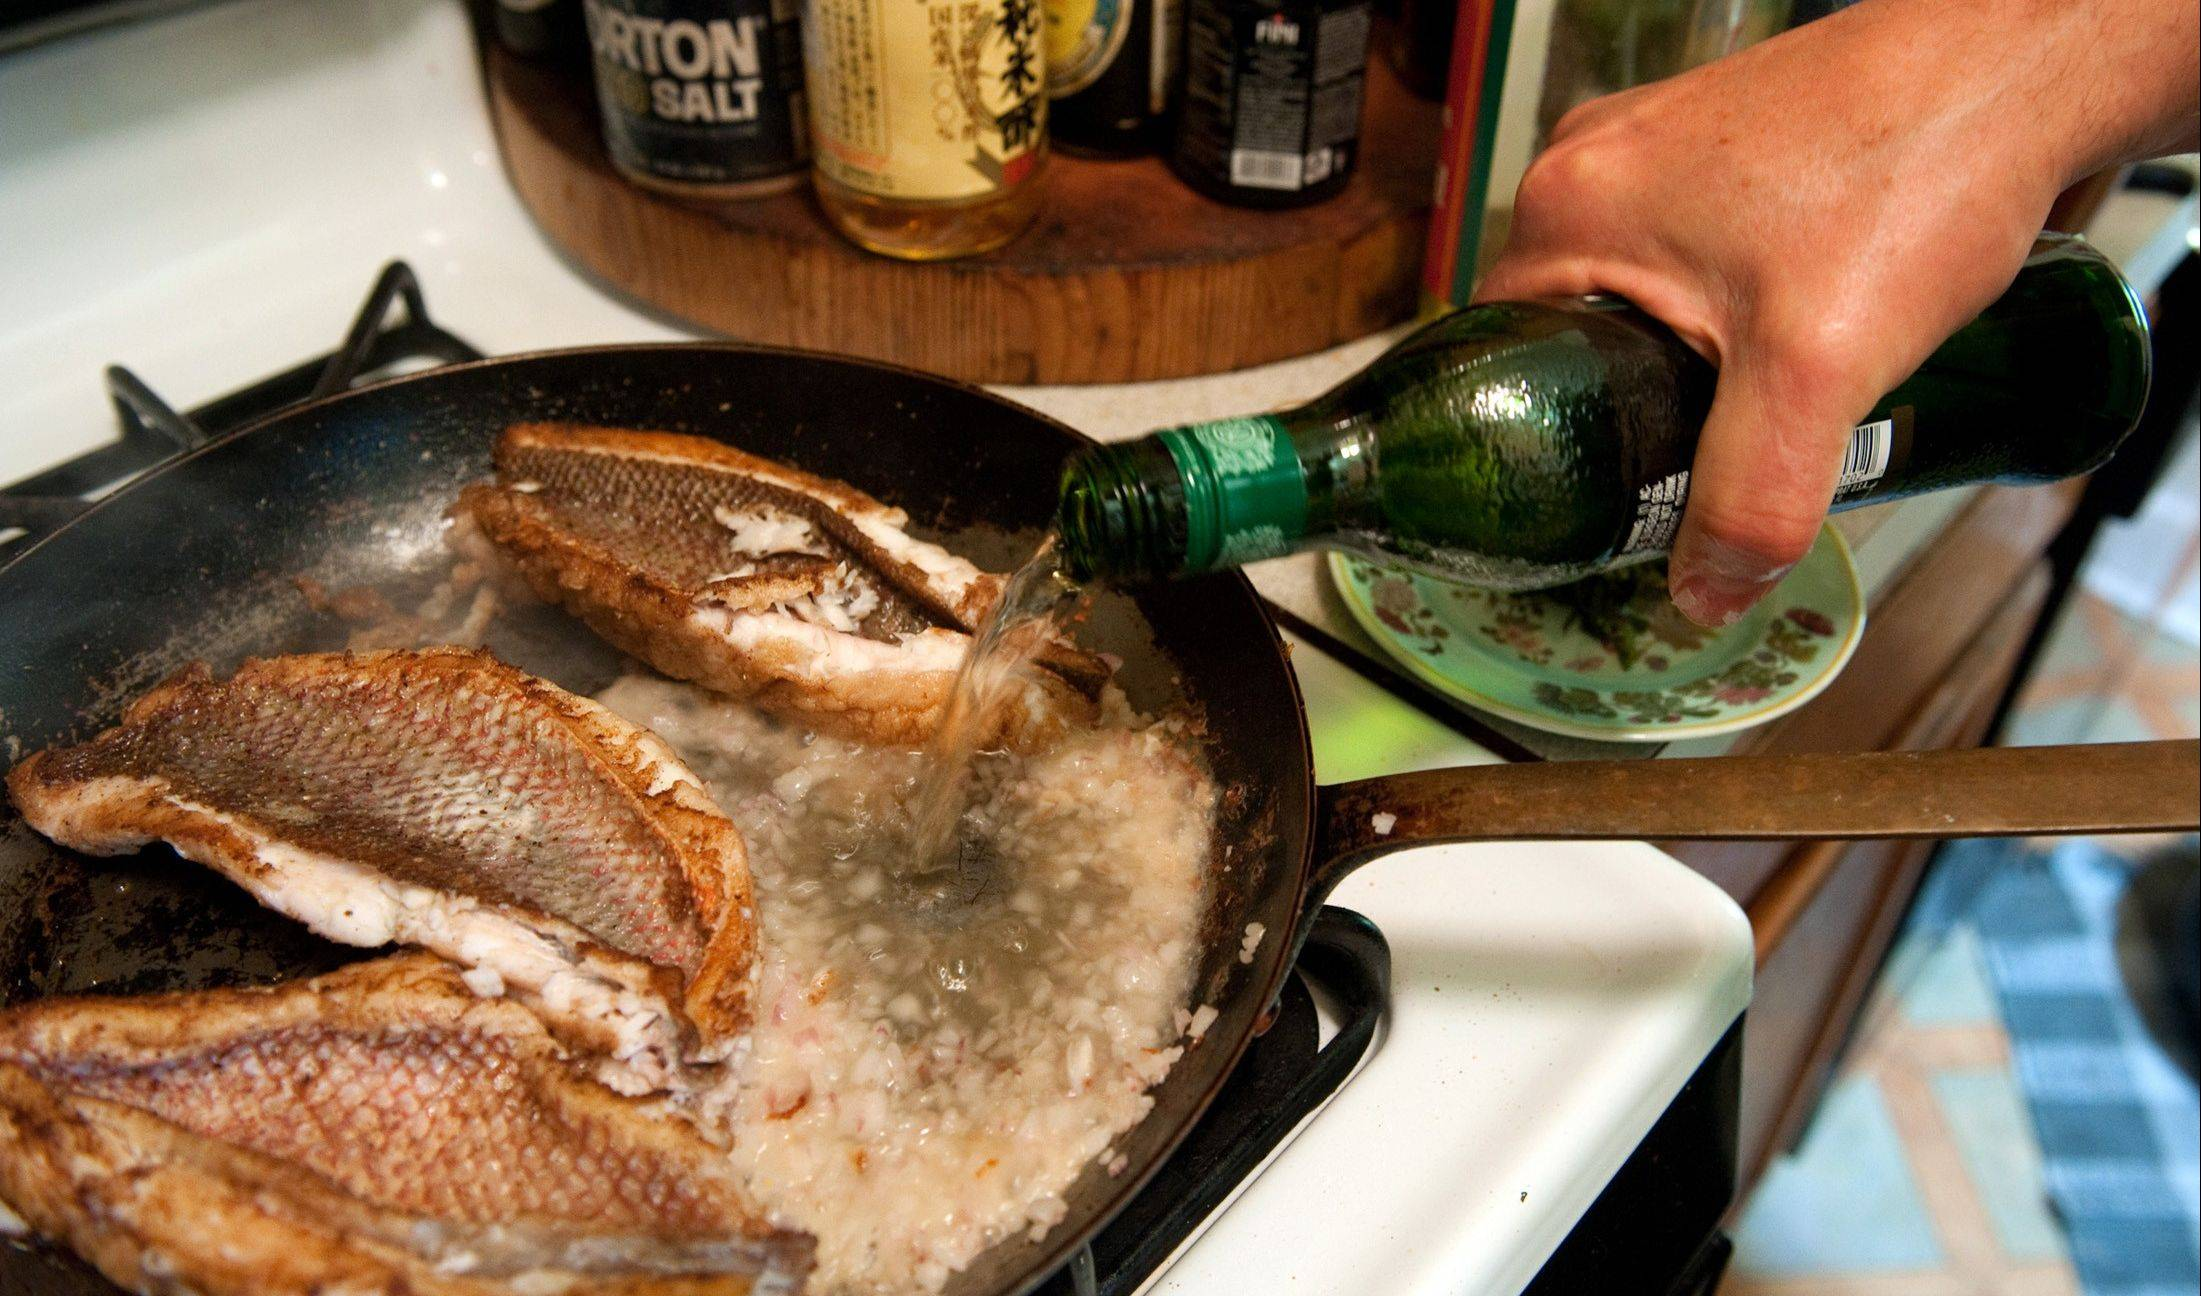 Rob Stewart adds vermouth to sauteed snapper fillets to get a quick sauce going. The Bordeaux-style dish fits perfectly into a summer menu.